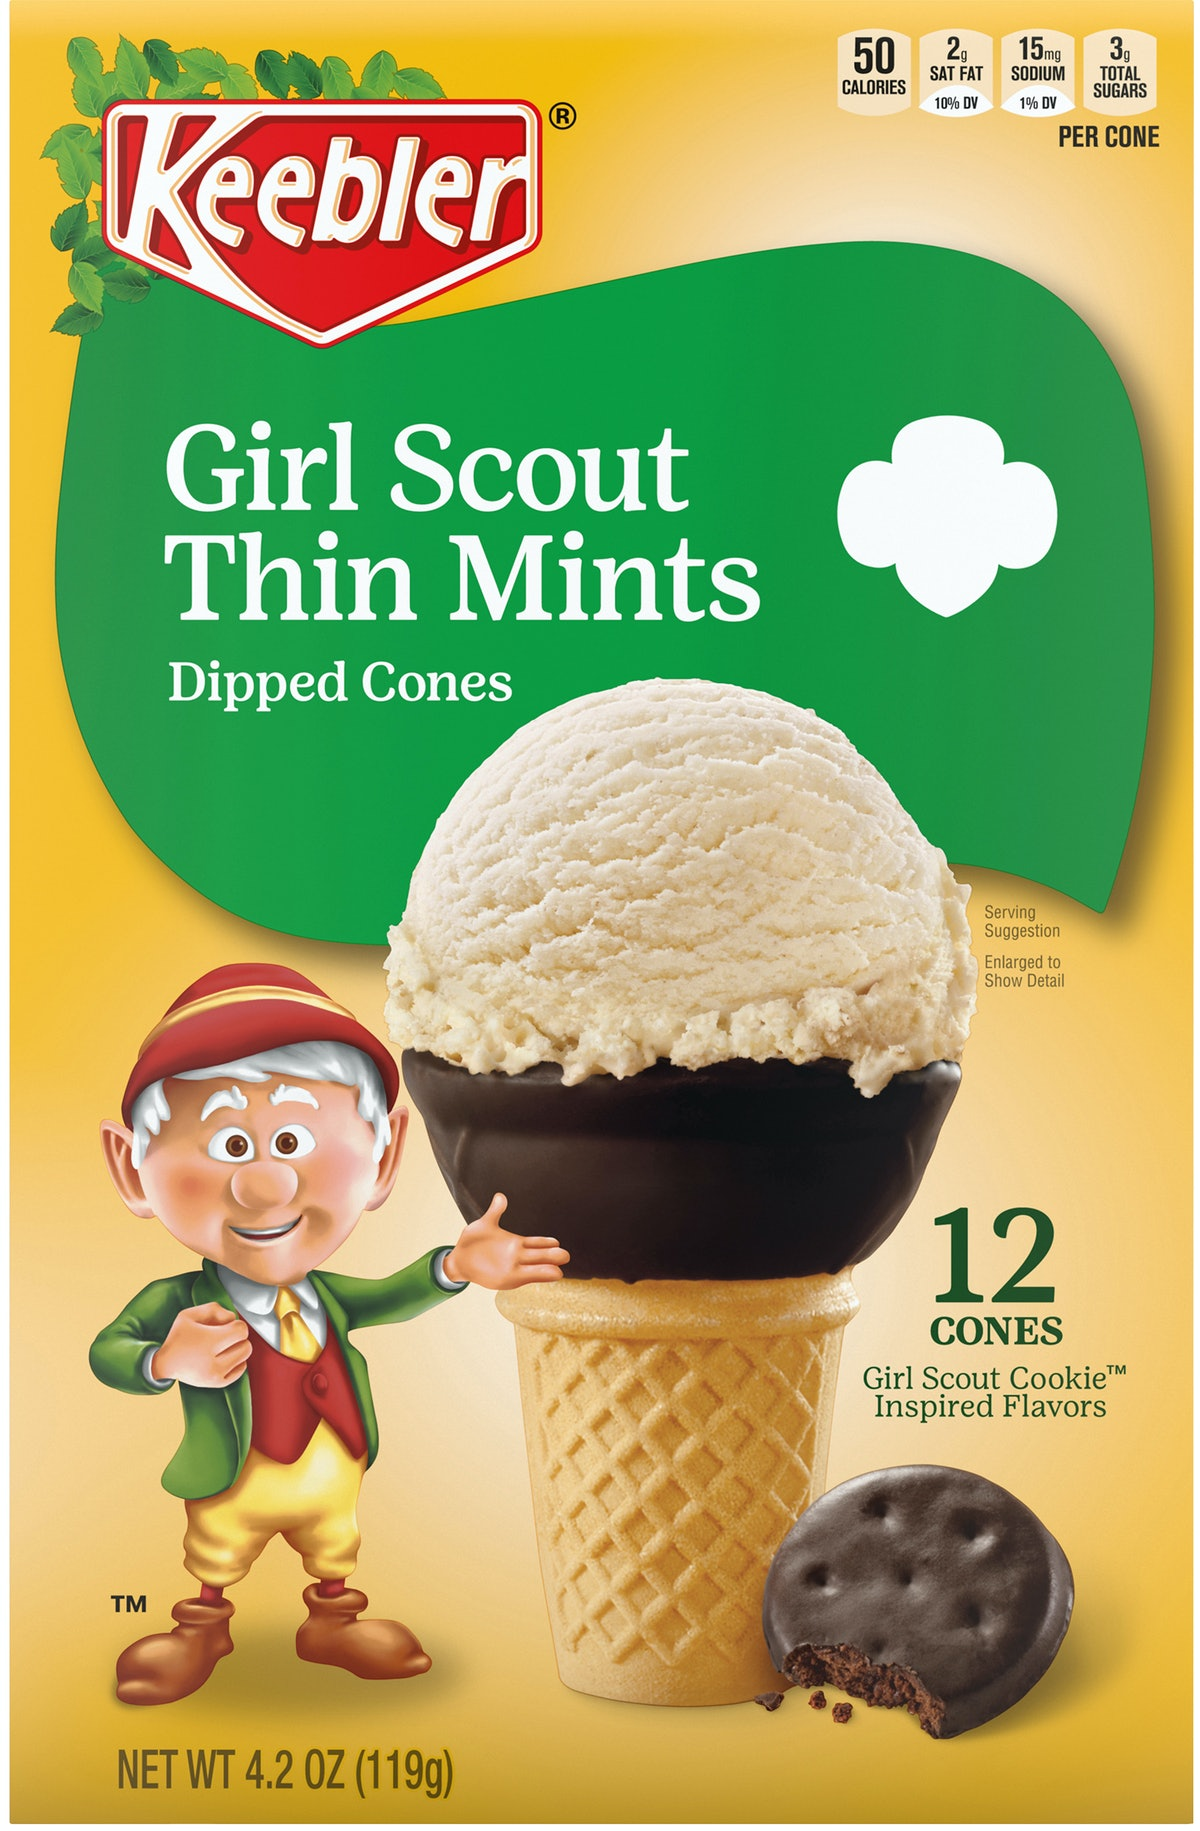 Keebler dropped Girl Scout Thin Mints Dipped Cones just in time for summer.